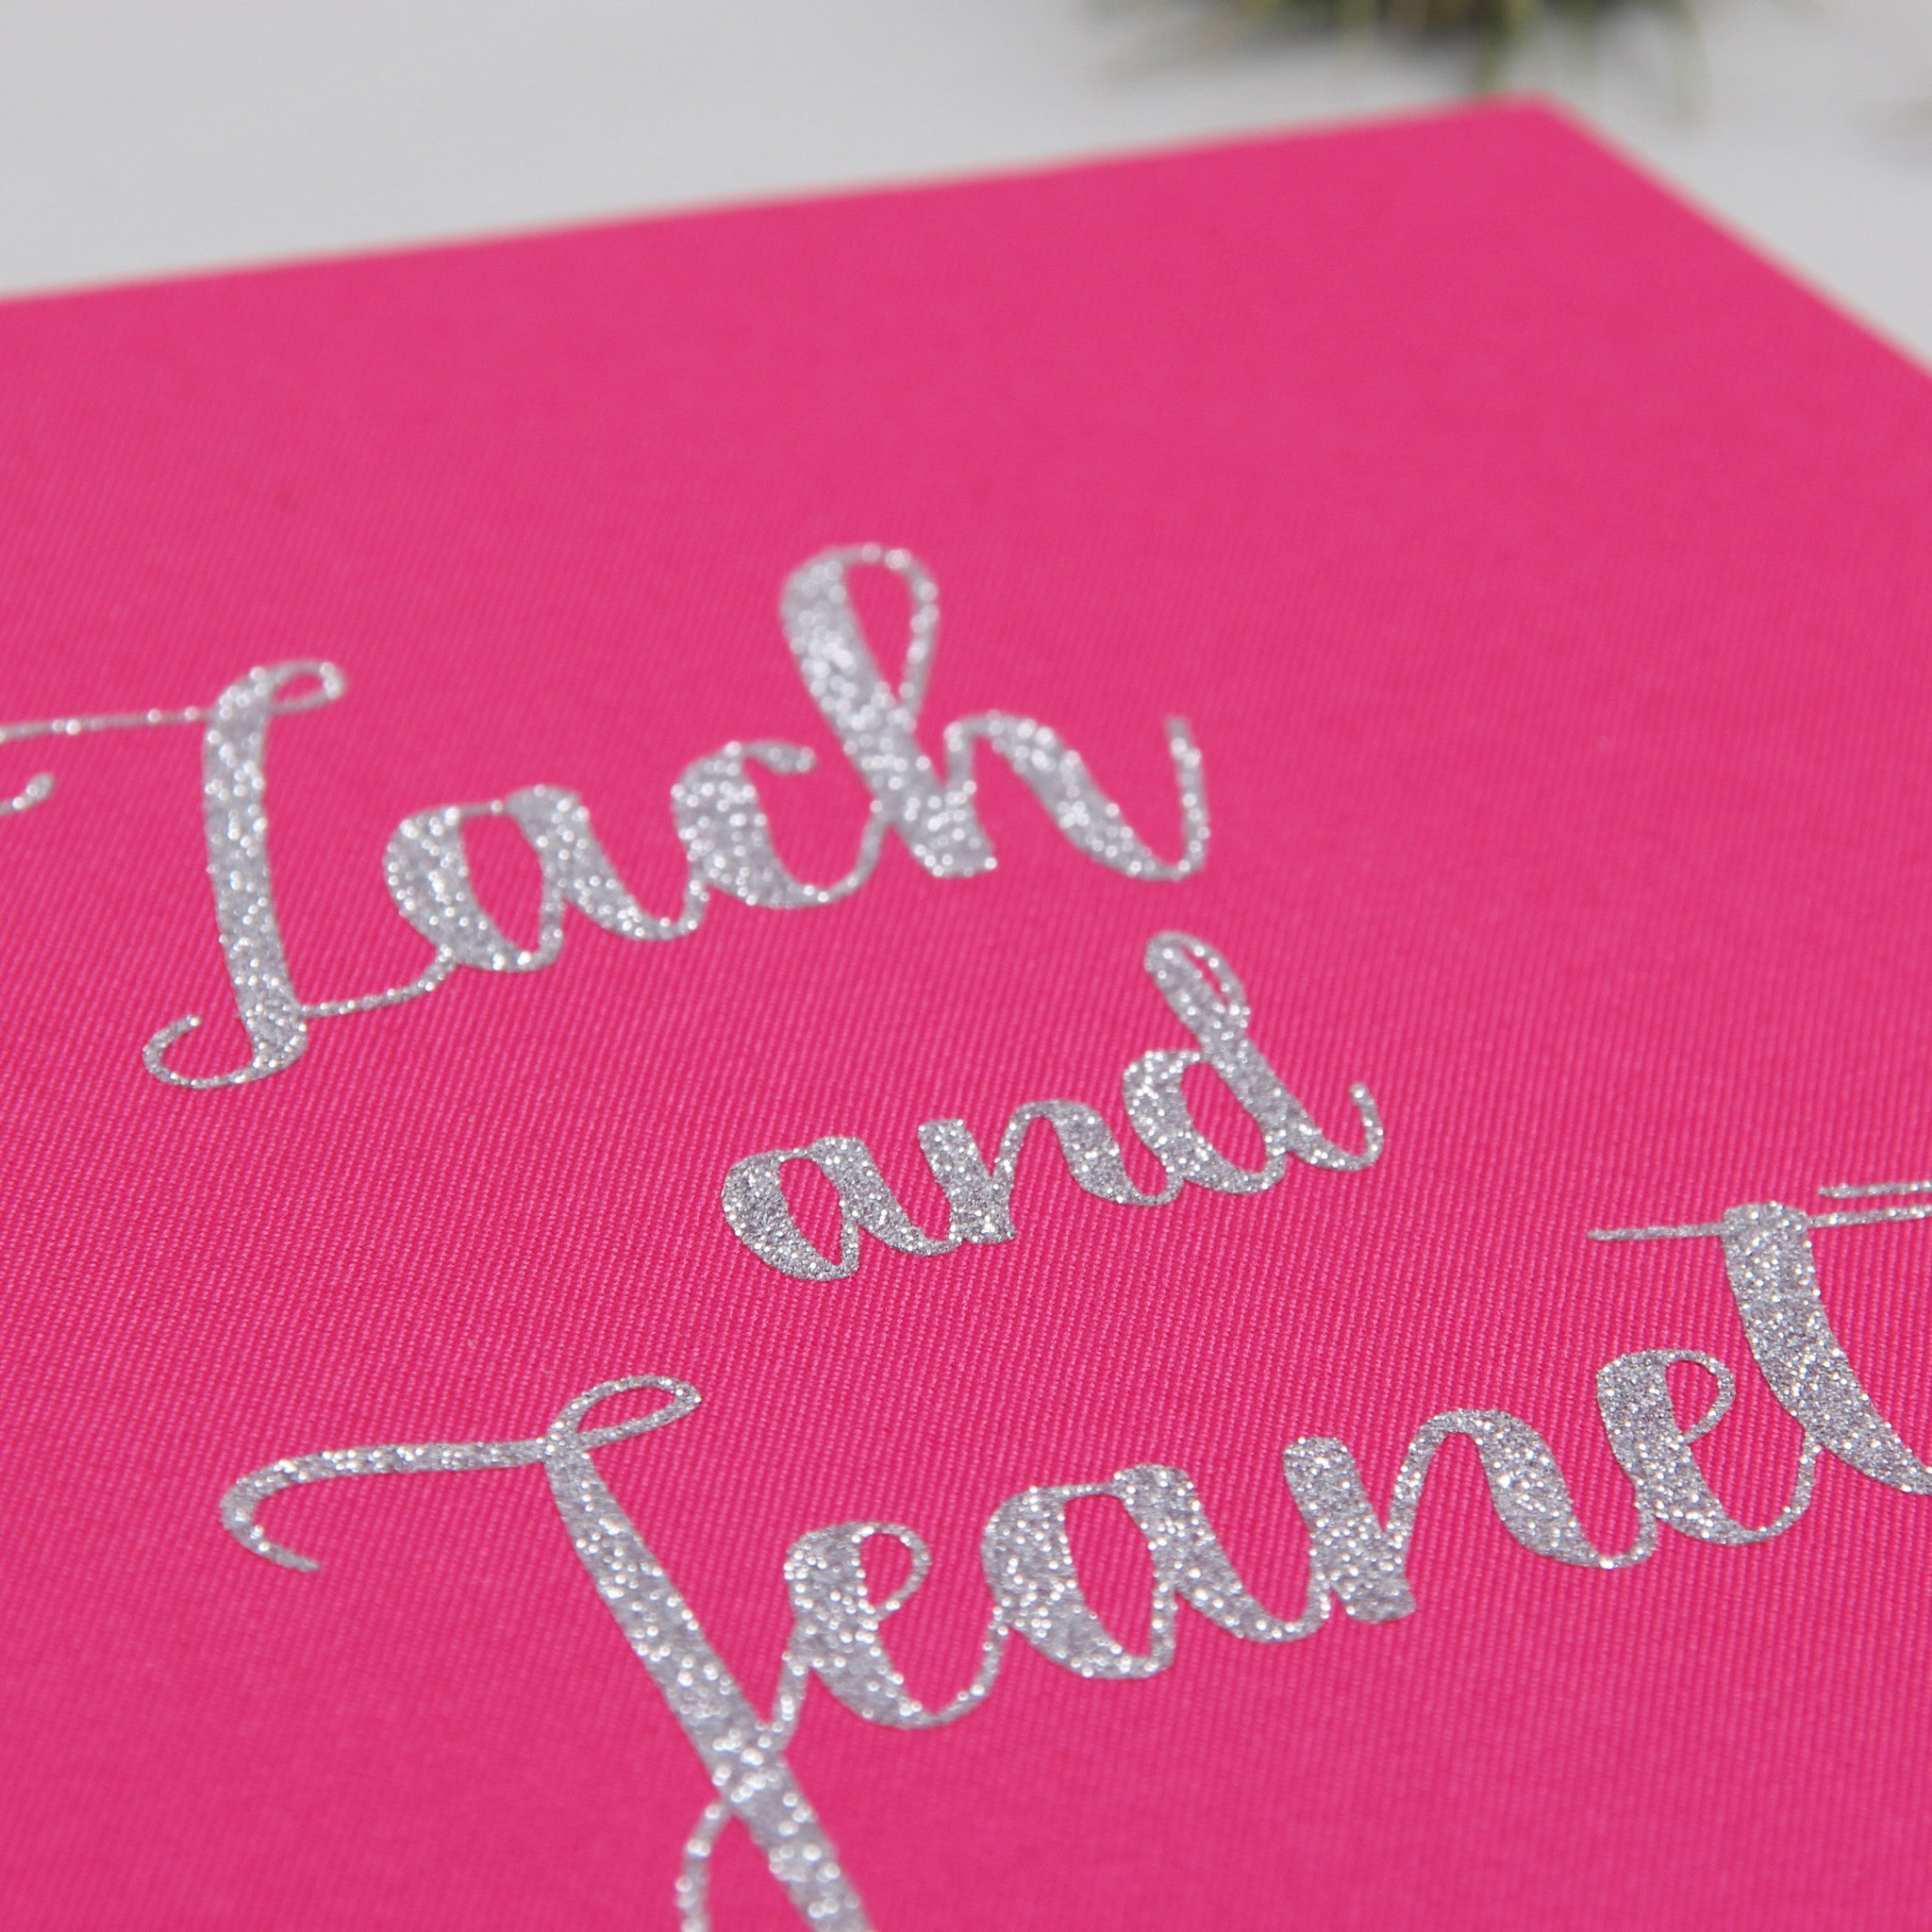 Guest Book Sign in Book Instant Album Magenta with Silver Glitter Lettering, Birthday Album by Liumy - Liumy